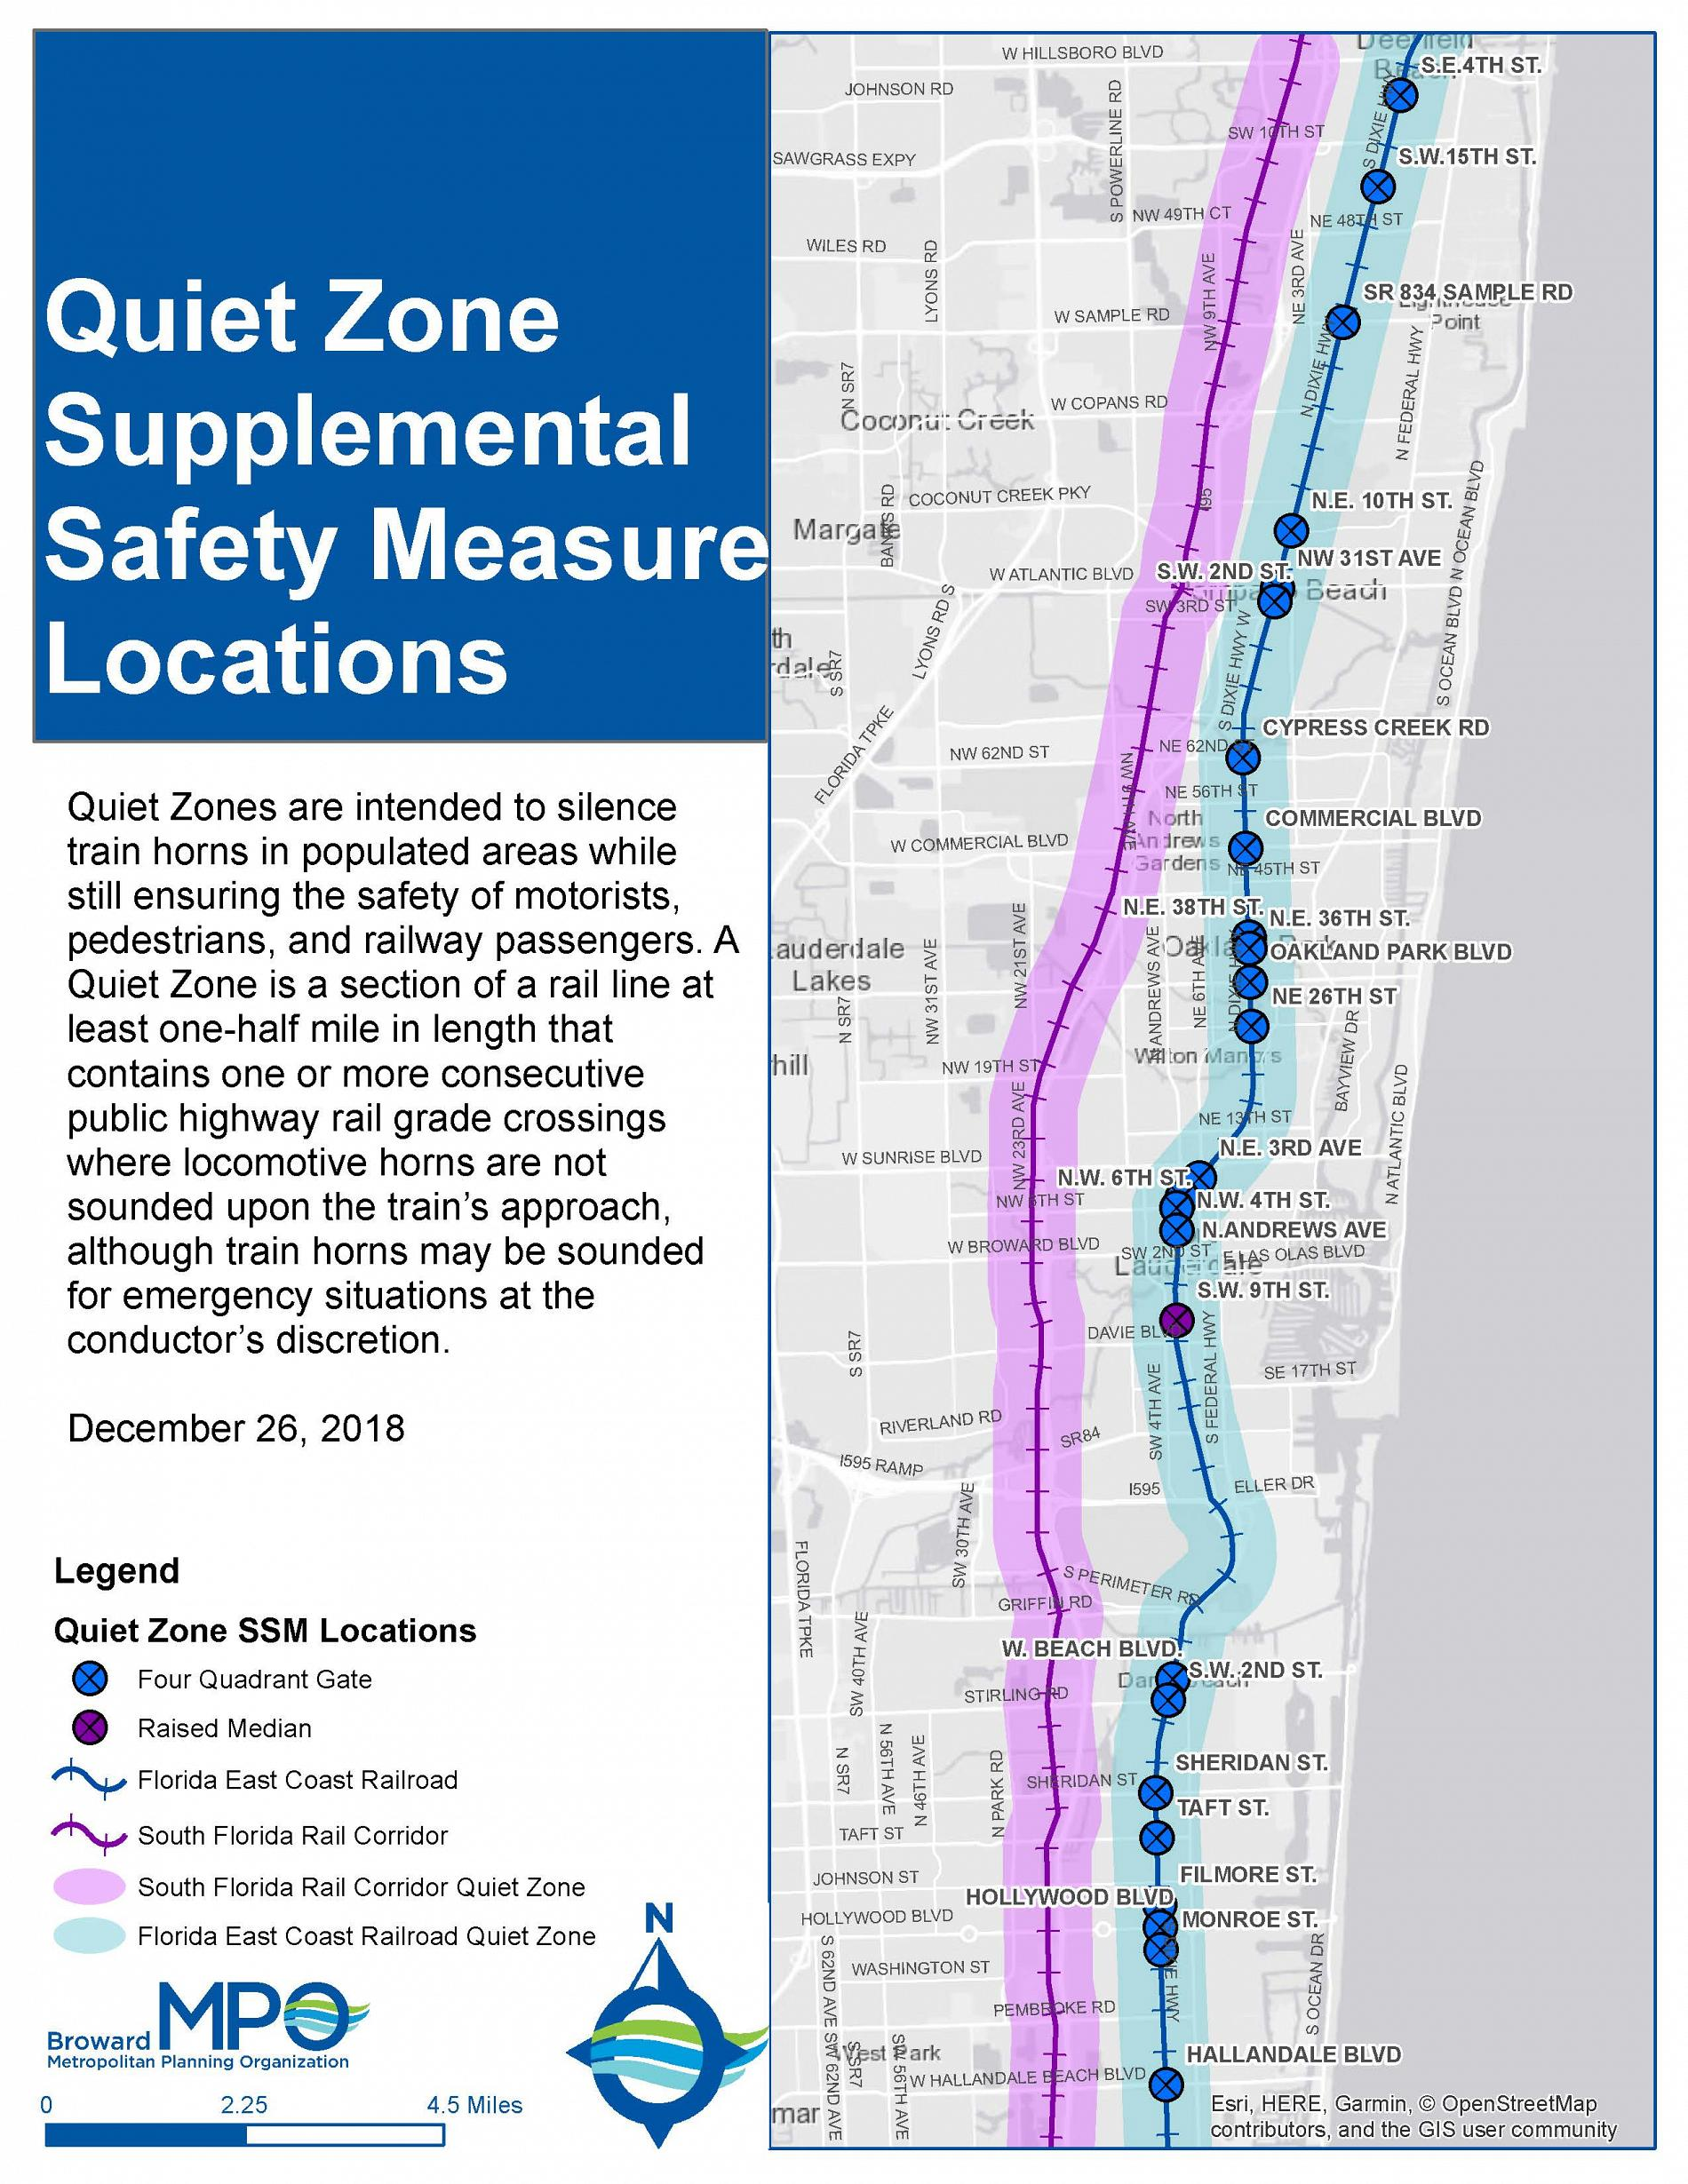 Quiet Zone SSM Locations 12 26 2018